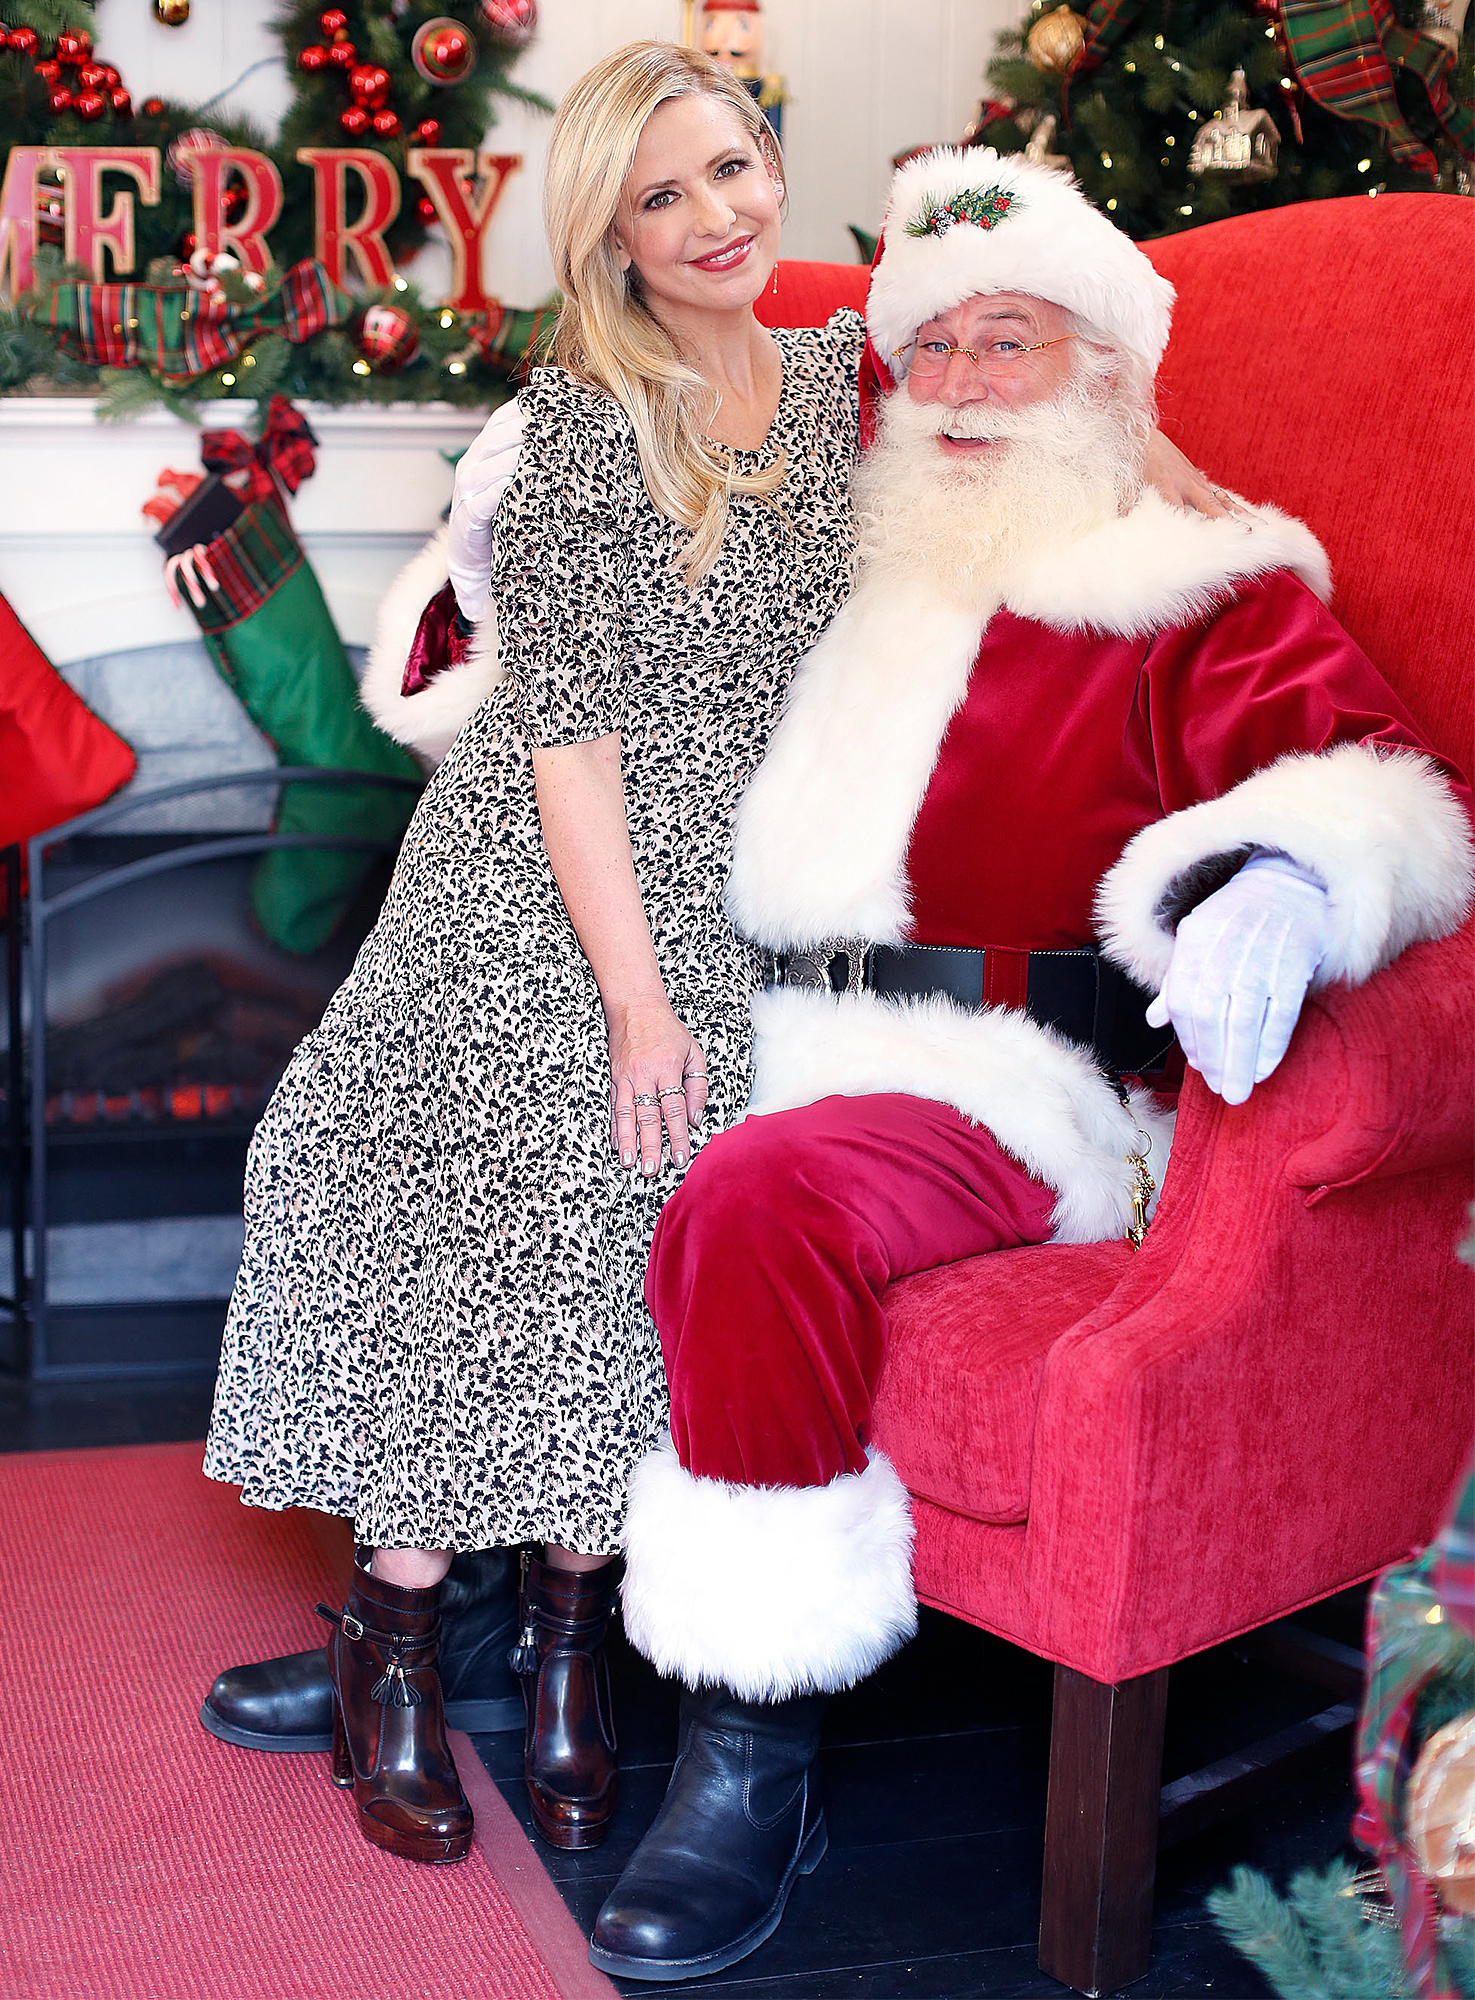 **EXCLUSIVE**  Photo Credit: MOVI Inc.   Date: December 17th 2018 FOR GLOBAL SALES CALL (U.S) 310 739 4693 OR EMAIL contact@movi-inc.comHoliday Spirit! Sarah Michelle Gellar visit's Santa's Cottage at Palisades Village in Pacific Palisades,CA.